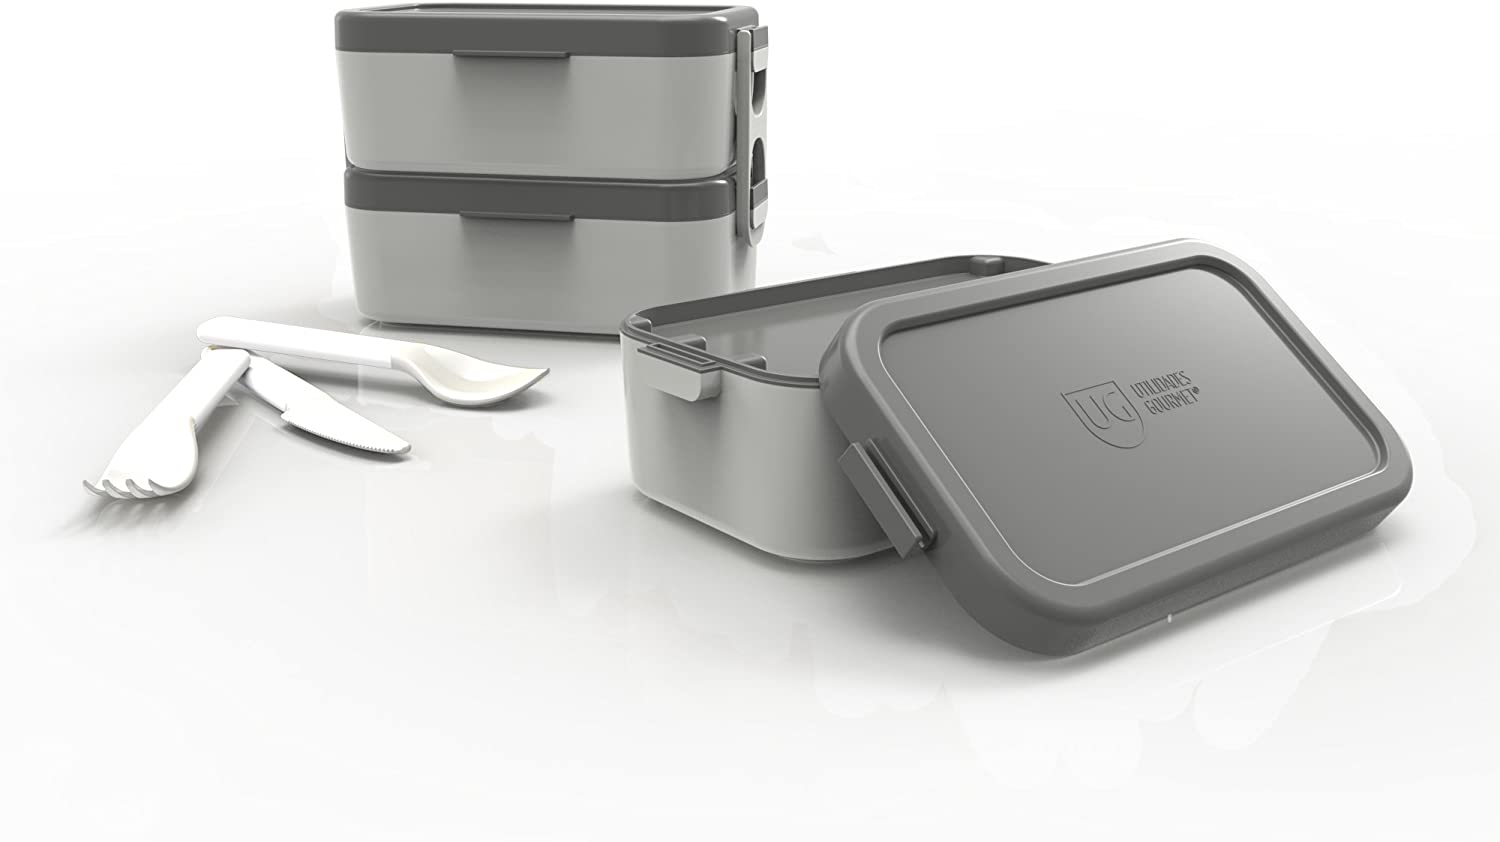 Bento Lunch Boxes - Reusable 2 Compartment Food Containers for School, Work and Travel. All-in-One – Includes 2 Stackable Containers and 1 Knife, 1 Spoon and 1 Fork. Kids Lunch Box. (Gray)